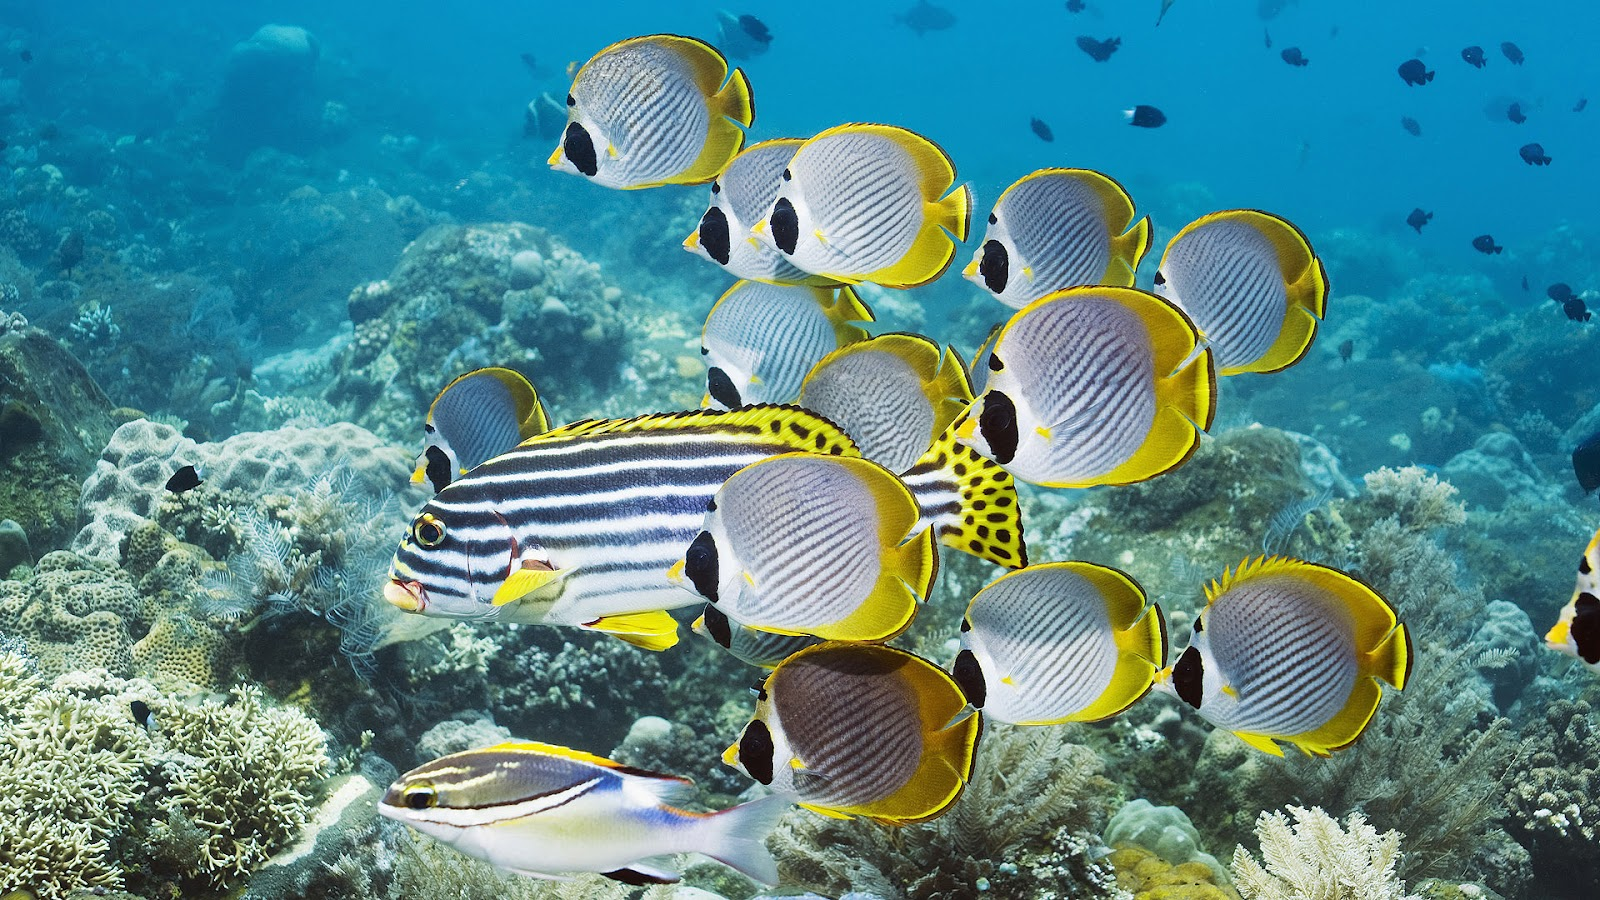 Wallpaper of a Group of Swimming Tropical Fish | HD fish wallpapers